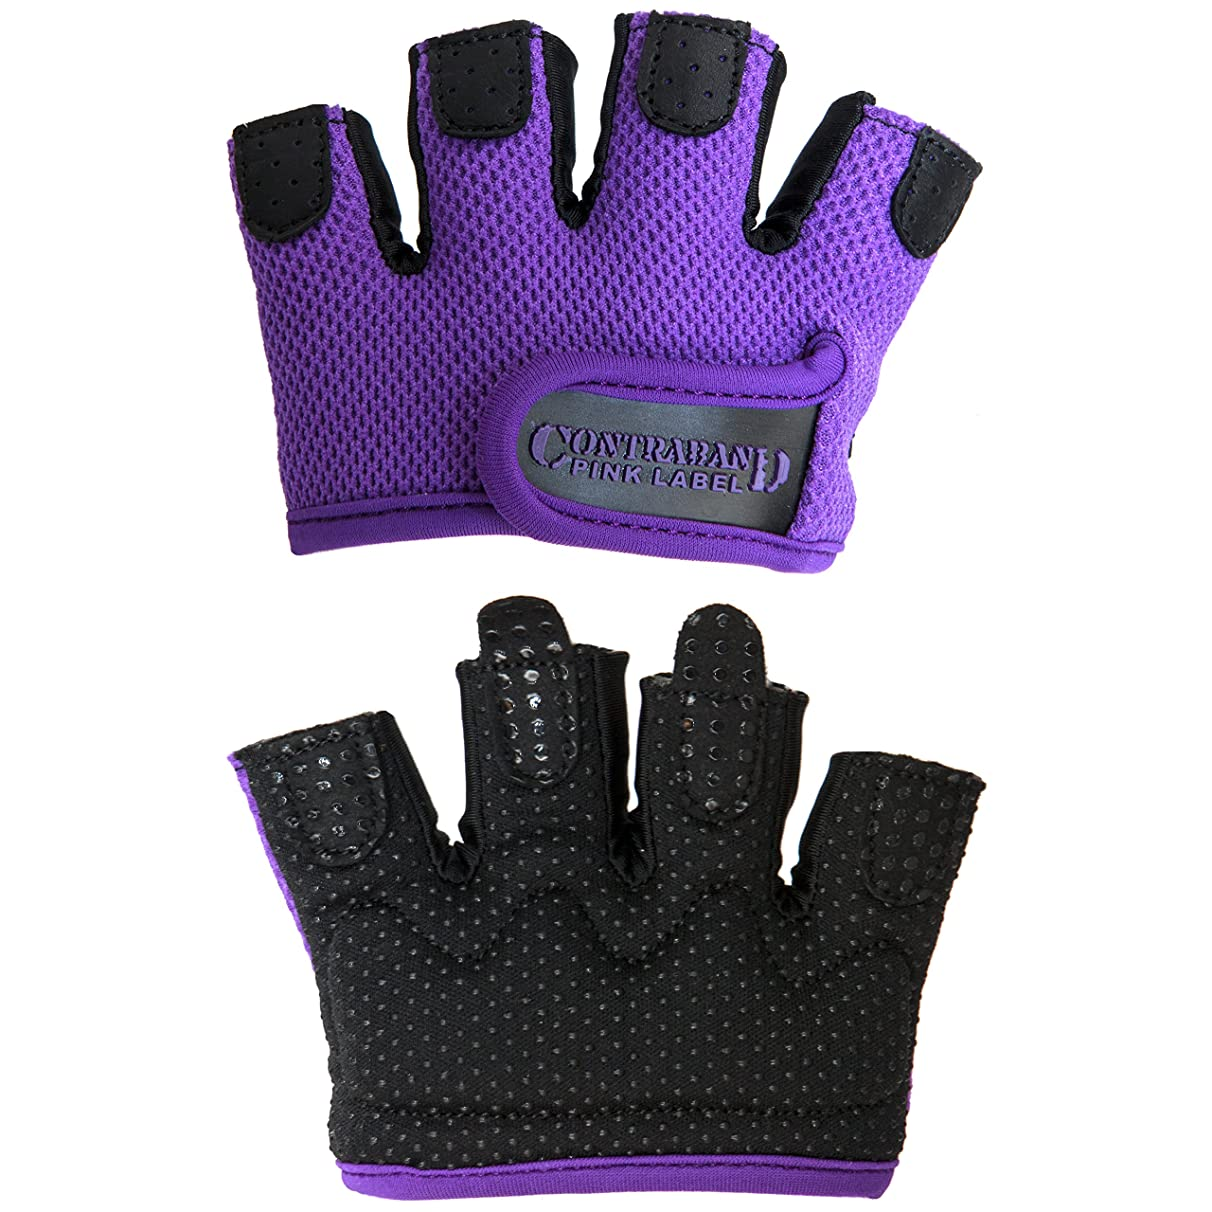 Contraband Pink Label 5537 Womens Micro Weight Lifting Gloves w/Grip-Lock Silicone Padding (Pair) - Minimalist Half Gloves - Apple Watch Friendly